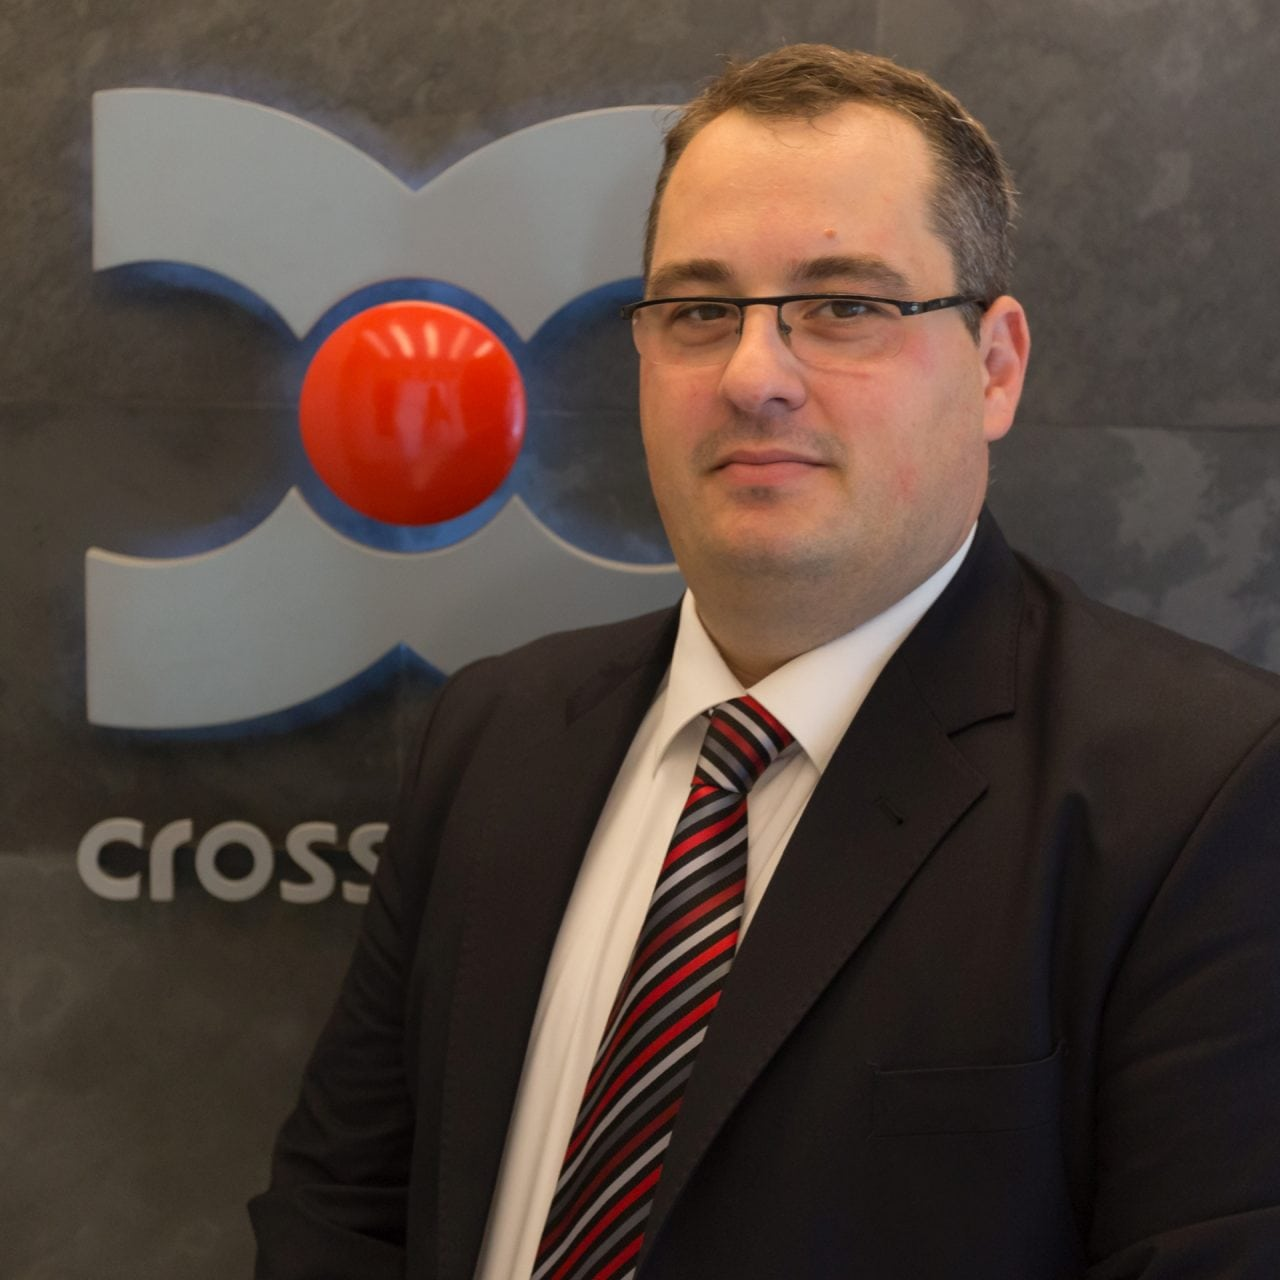 Cosmin Grecu Head of Crosspoint Valuation - Crosspoint Real Estate isi extinde competentele de consultanta imobiliara